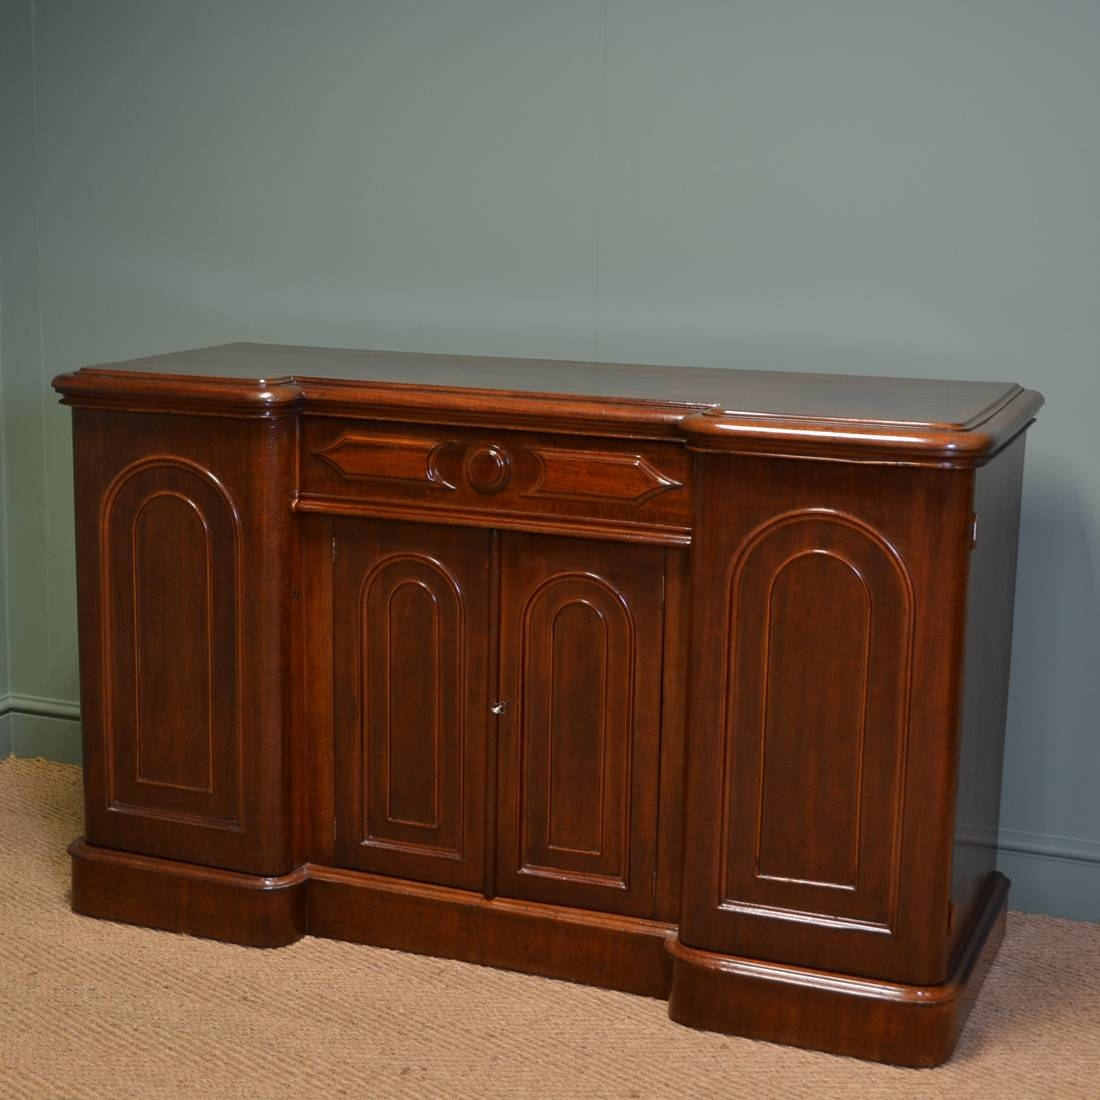 Rich Mahogany Victorian Antique Sideboard - Antiques World within Antique Sideboards (Image 15 of 15)